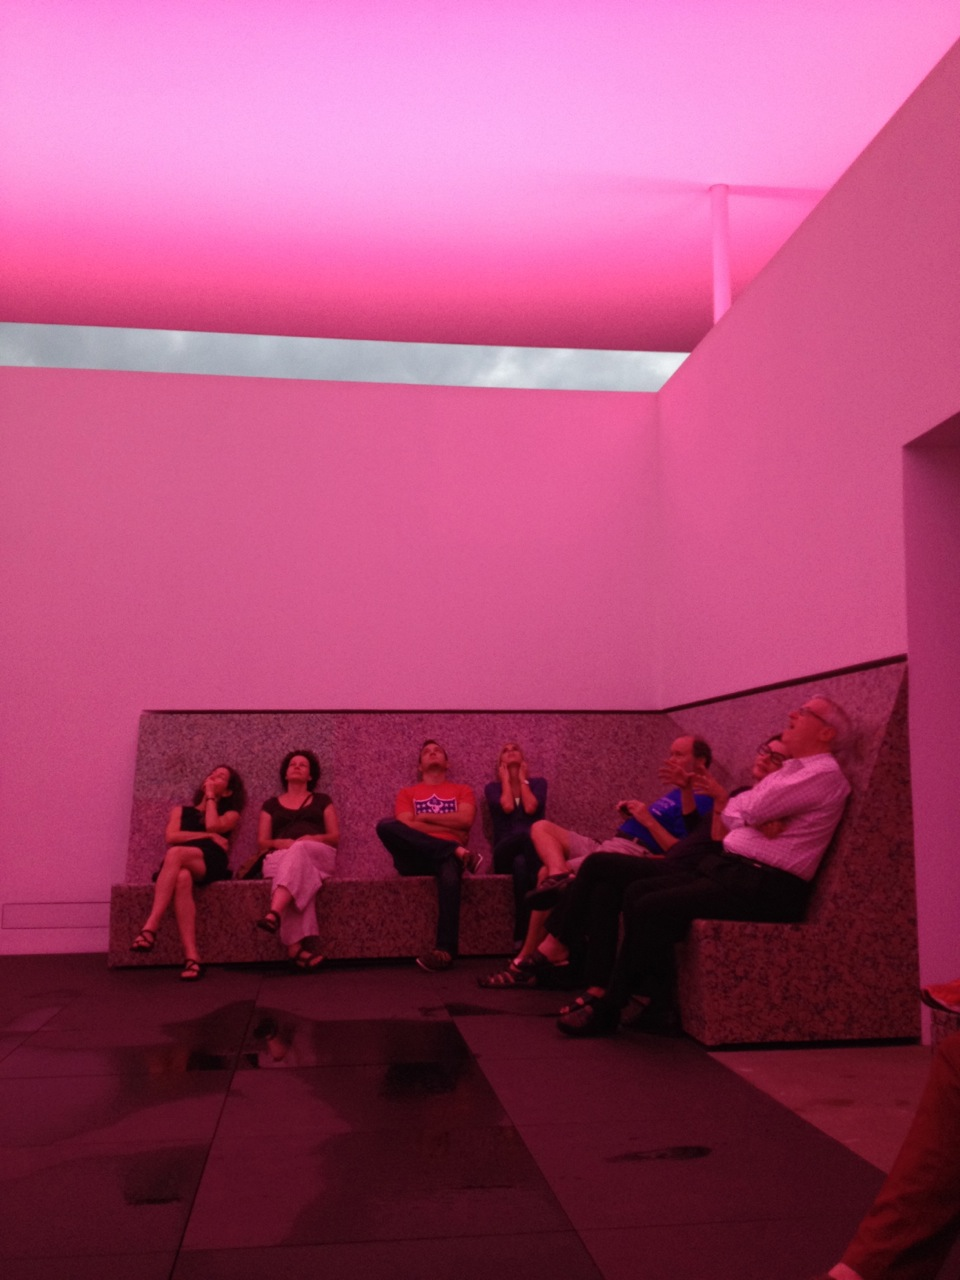 Inside, visitors take in the subtlety changing light installation.